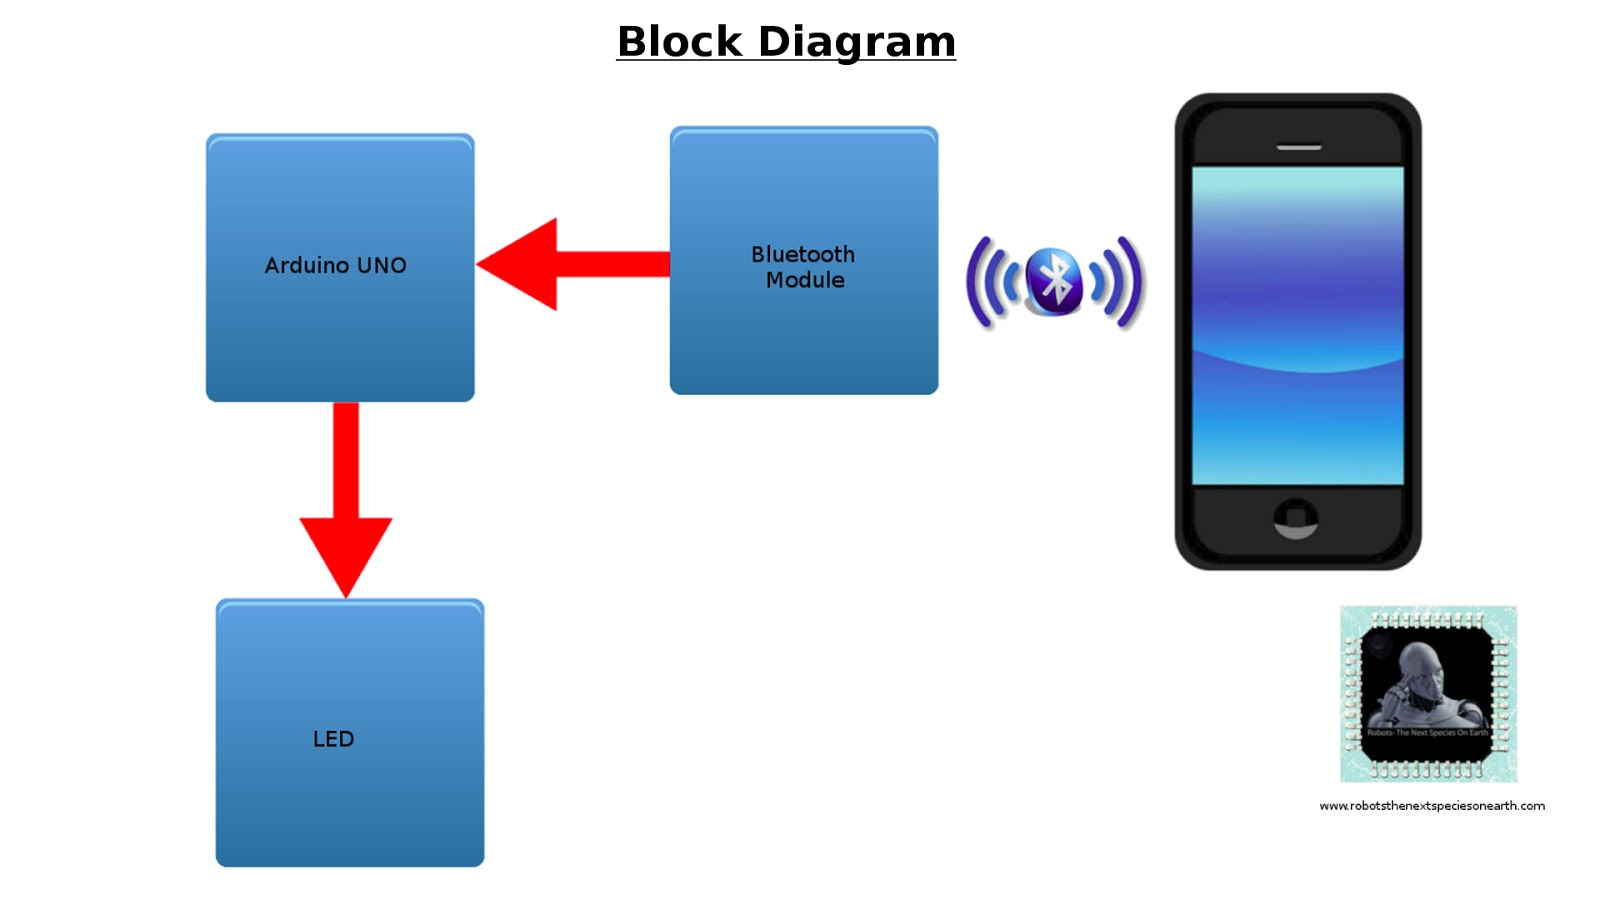 Robot Icon Android Application Project Make A Block Diagram Here Are Manufacturer Guidelines For The Brand And Related Assets Built With Blockly Is Being Used By Hundreds Of Projects